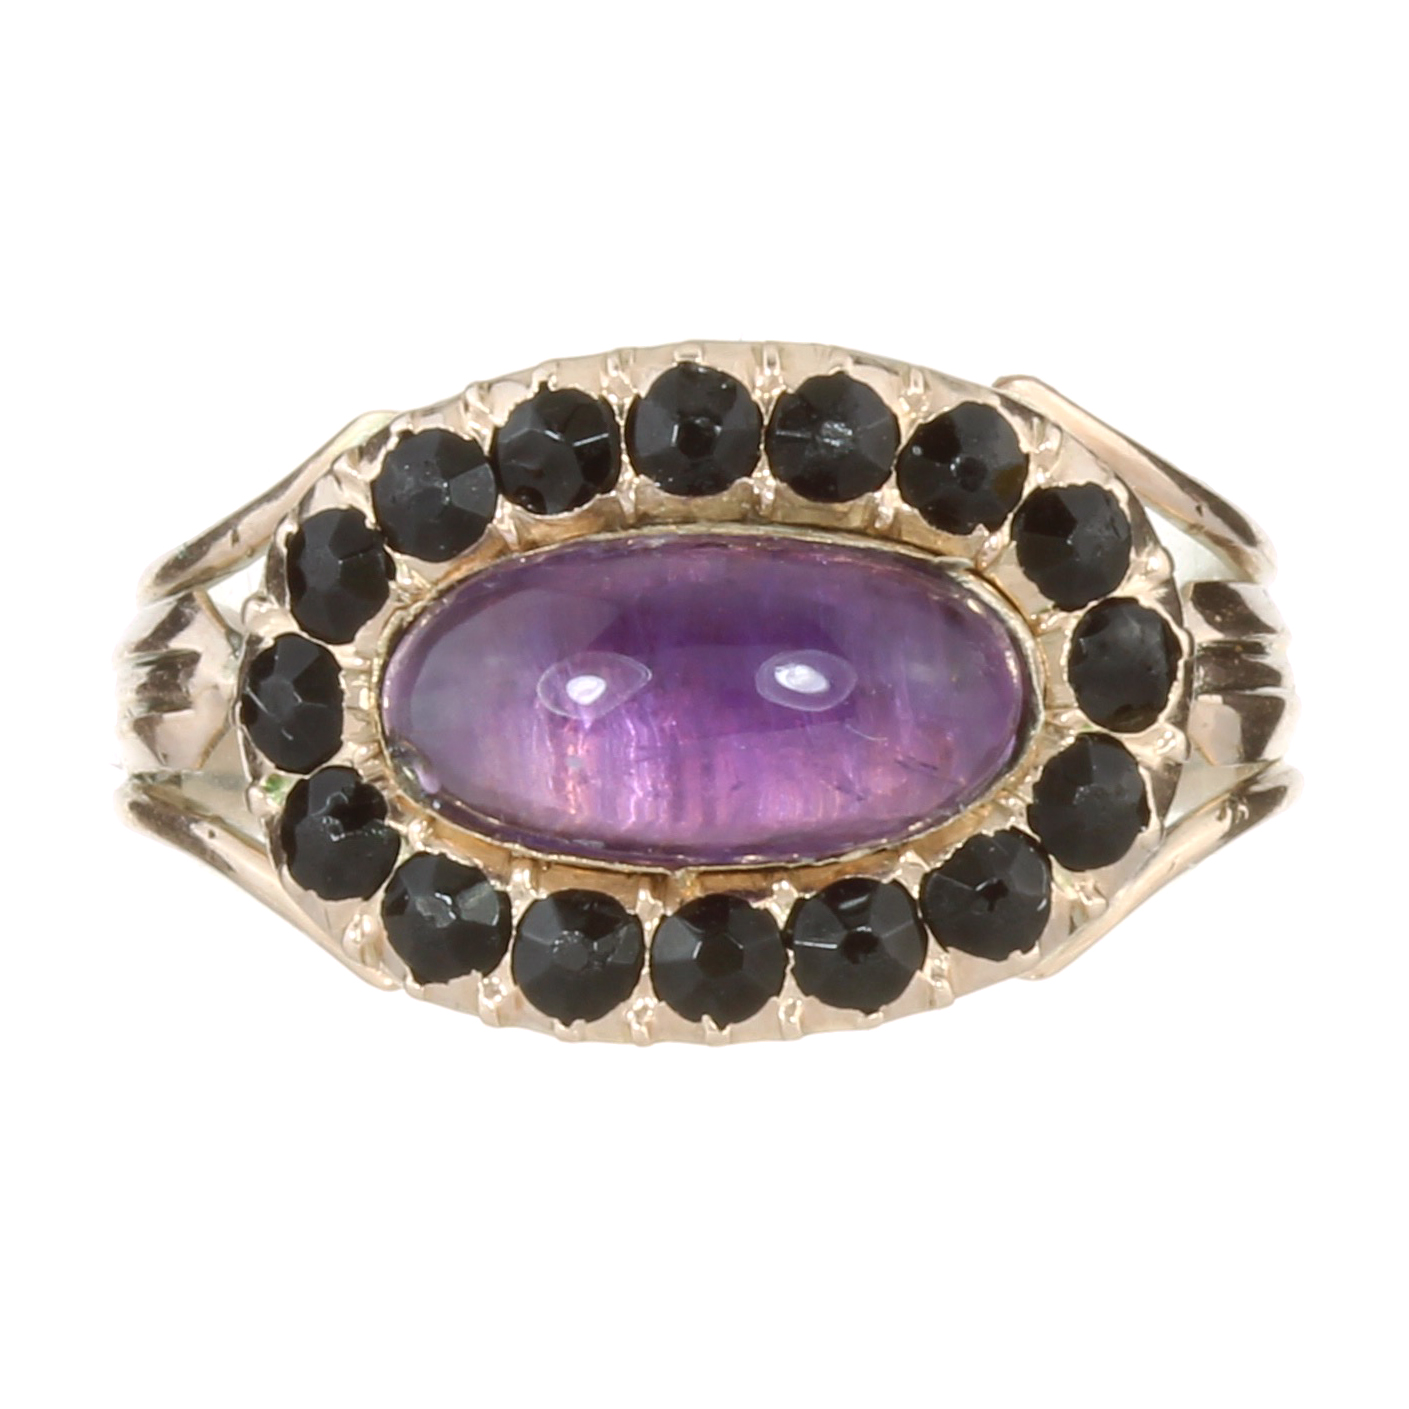 Los 19 - AN ANTIQUE GEORGIAN AMETHYST AND ONYX MOURNING RING, EARLY 19TH CENTURY in high carat yellow gold,